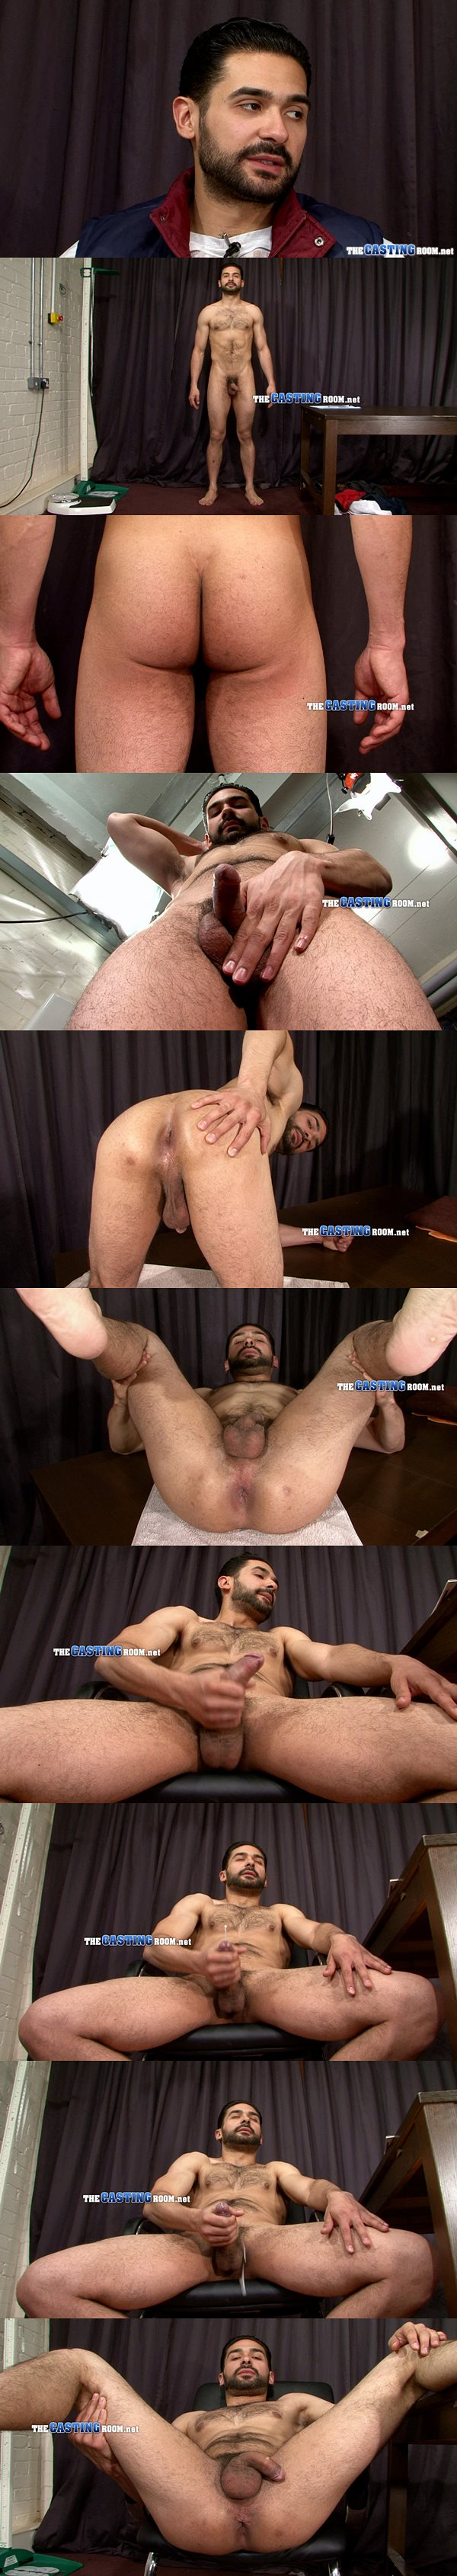 Masculine Hetero Marco shows off his strong hairy body before he jerks off at Thecastingroom